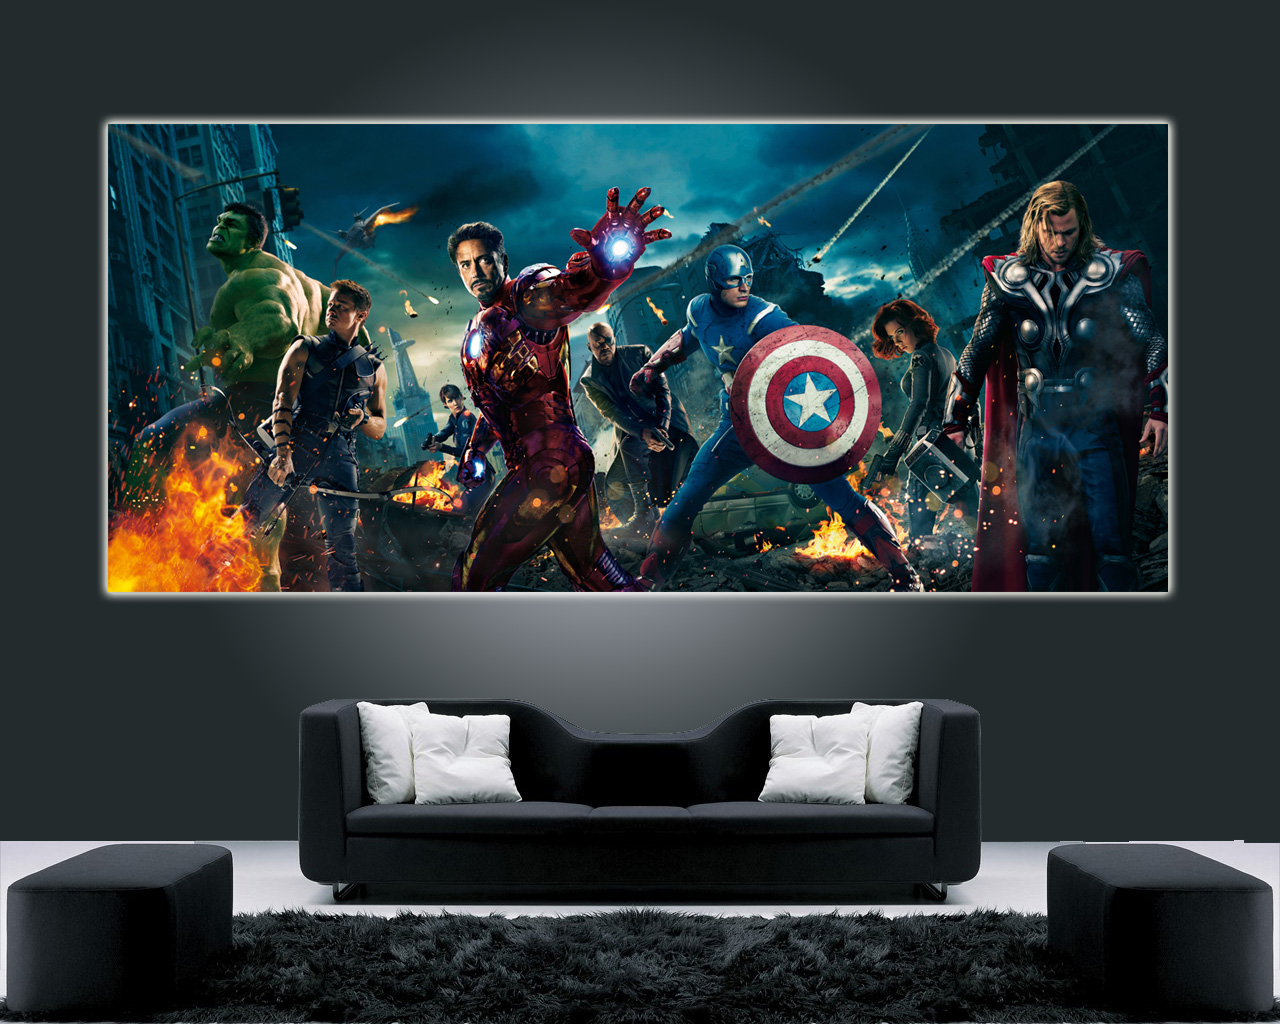 avengers hi quality movie poster xxl wall art 22x50 iron man hulk marvel ebay. Black Bedroom Furniture Sets. Home Design Ideas